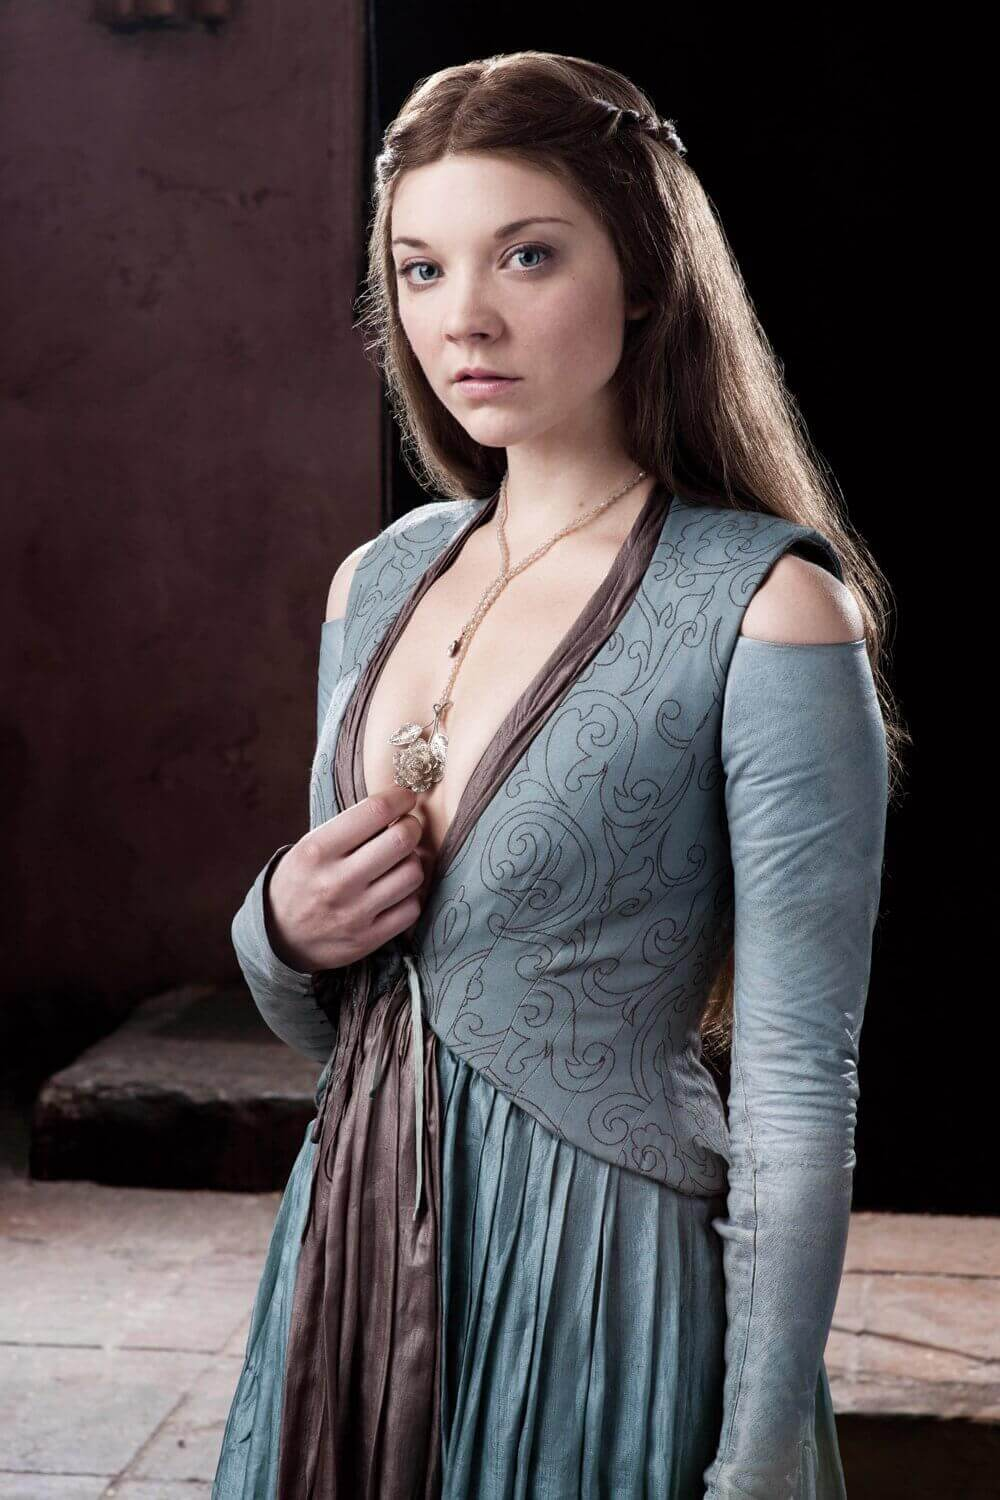 65+ Sexy Natalie Dormer Boobs Pictures Will Make You Her